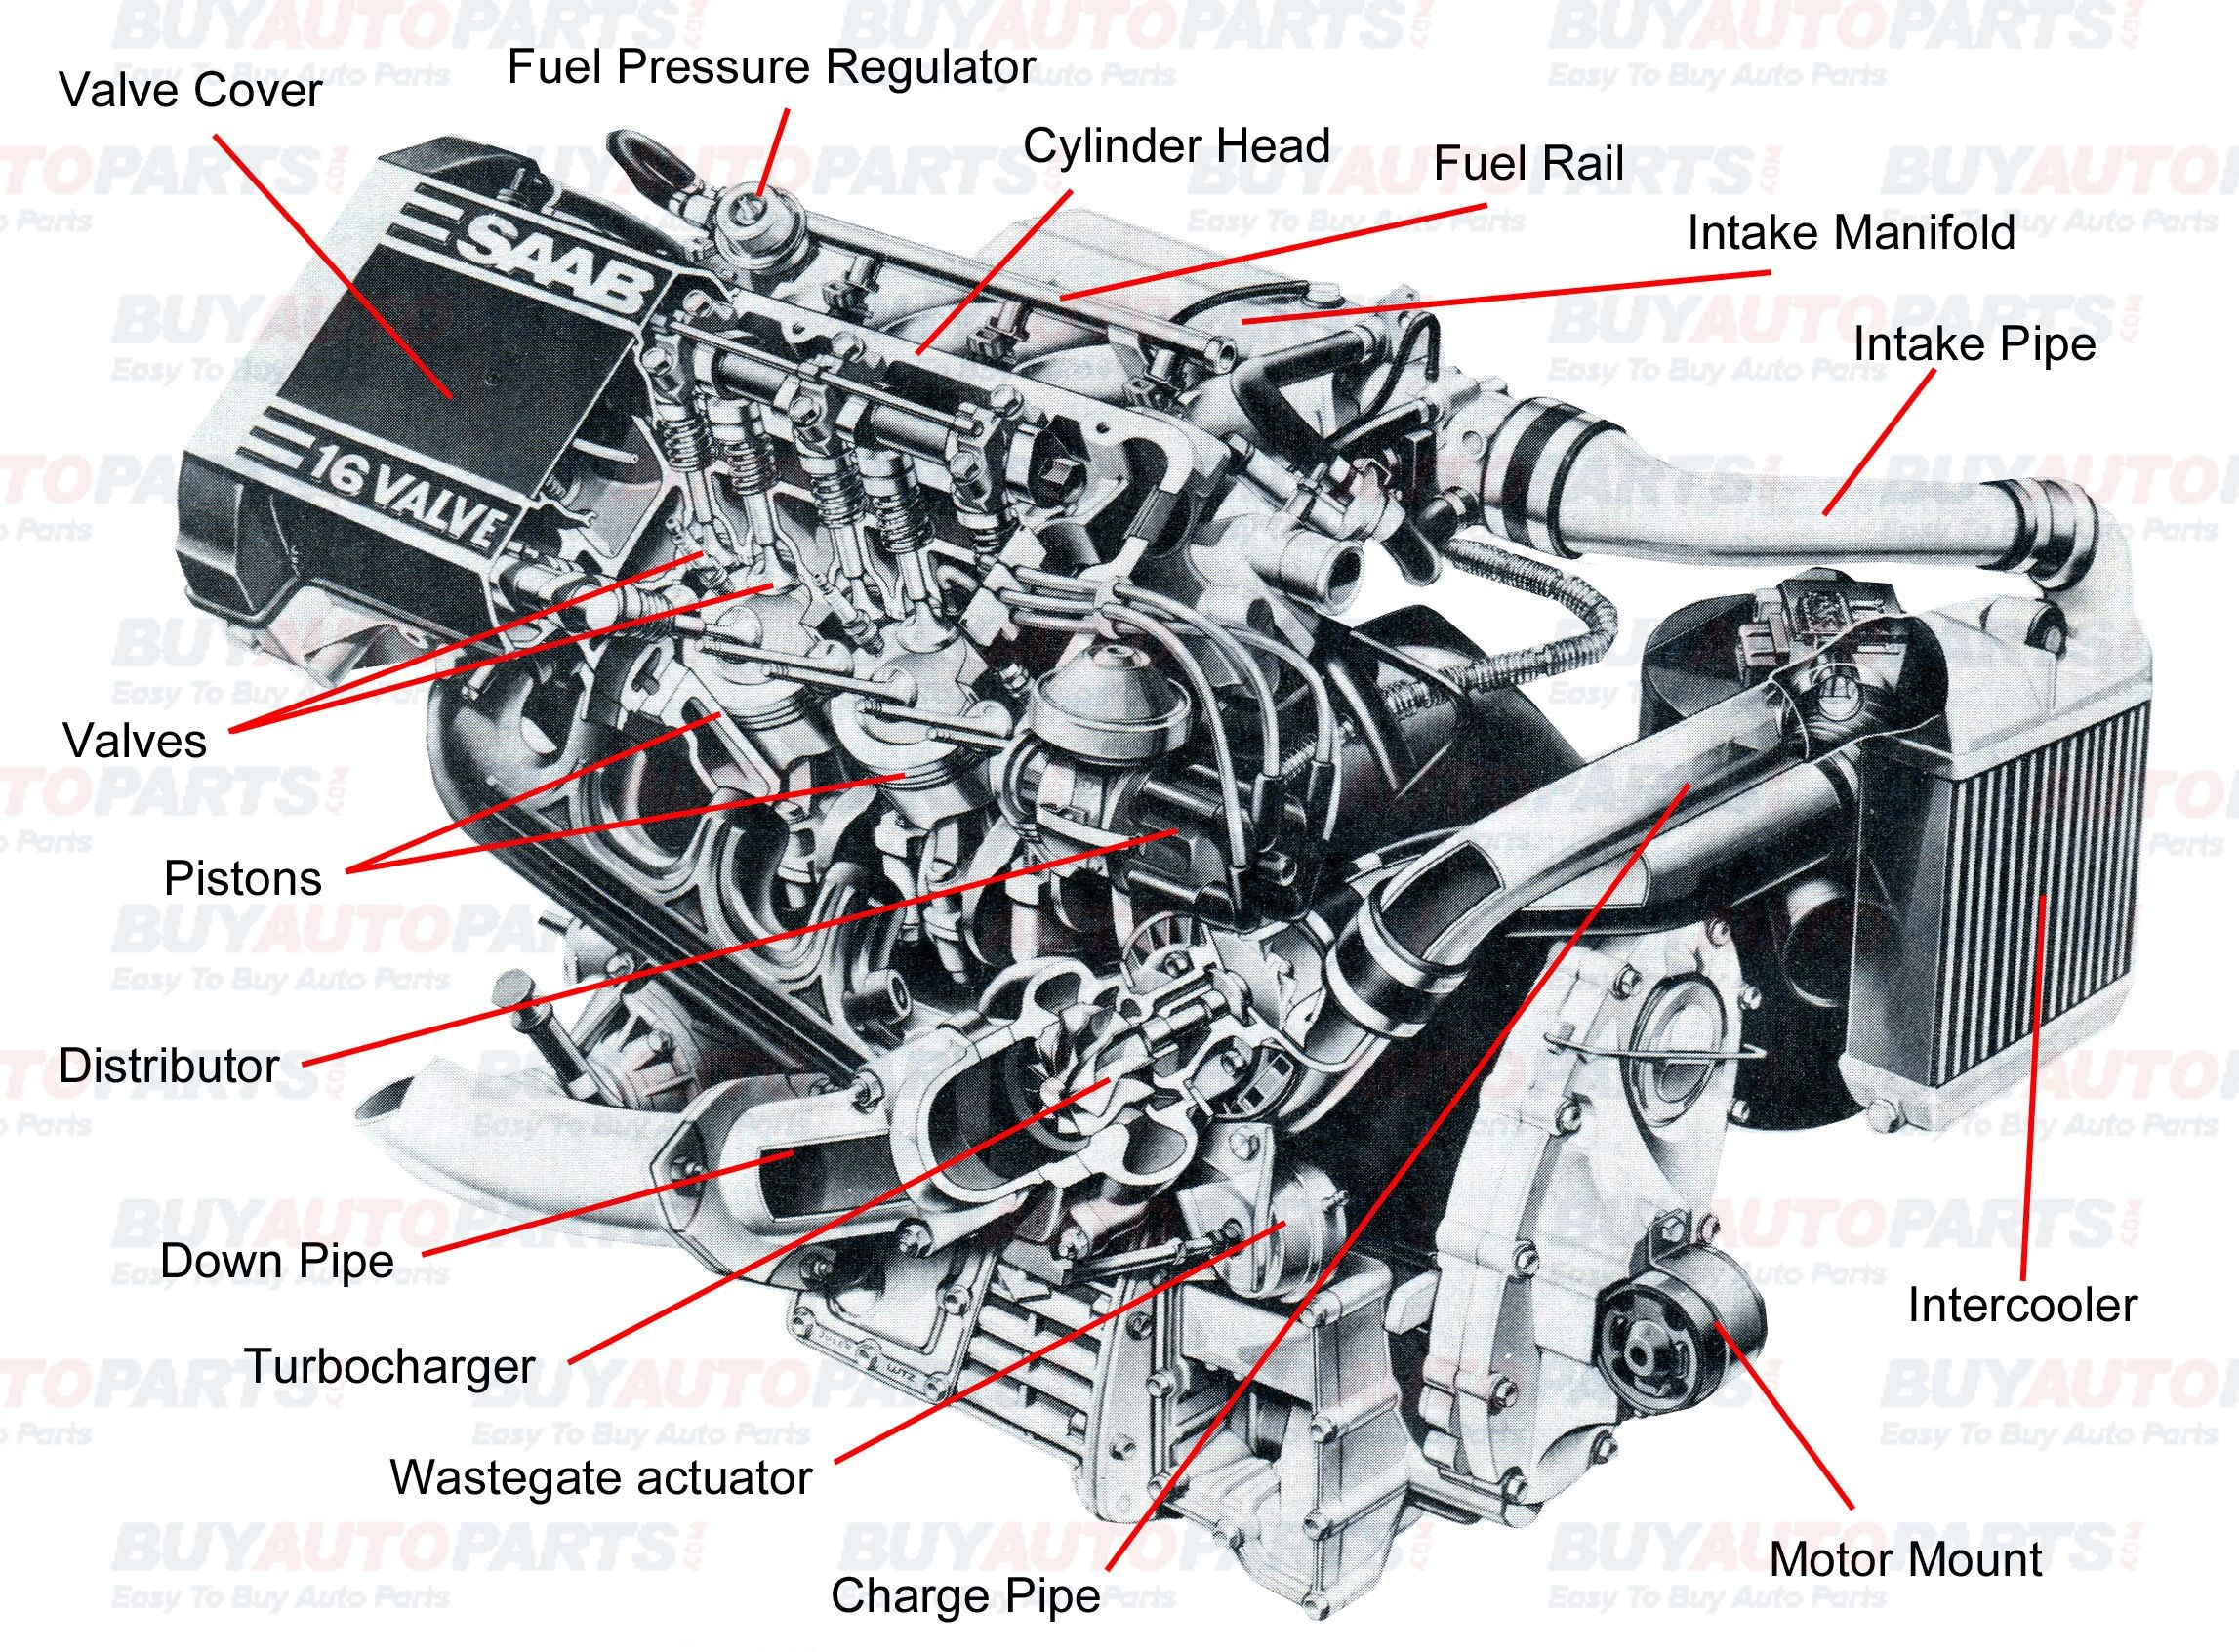 Car Body Parts Diagram Pin by Jimmiejanet Testellamwfz On What Does An Engine with Turbo Of Car Body Parts Diagram